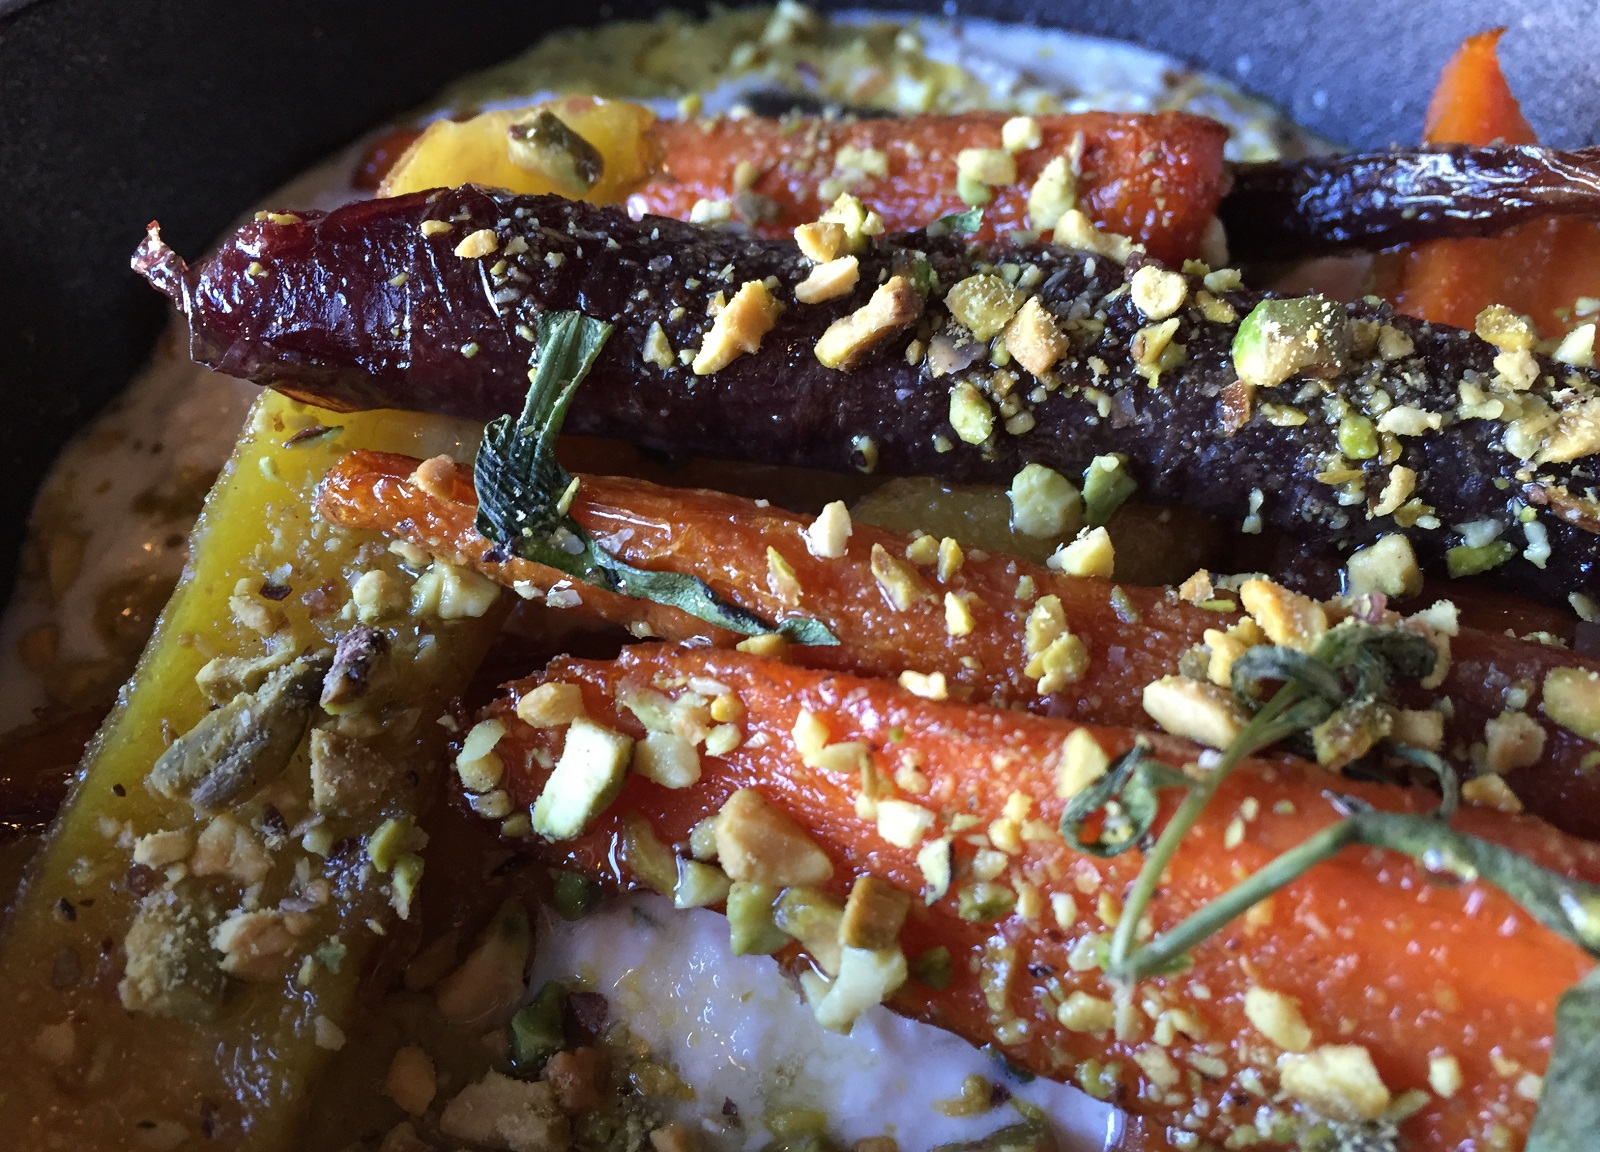 Chef Wieszala proves his prowess with vegetables in this dish of honey roasted carrots with smoked pistachio butter and ricotta. (Caitlin Hartney/Special to The News)